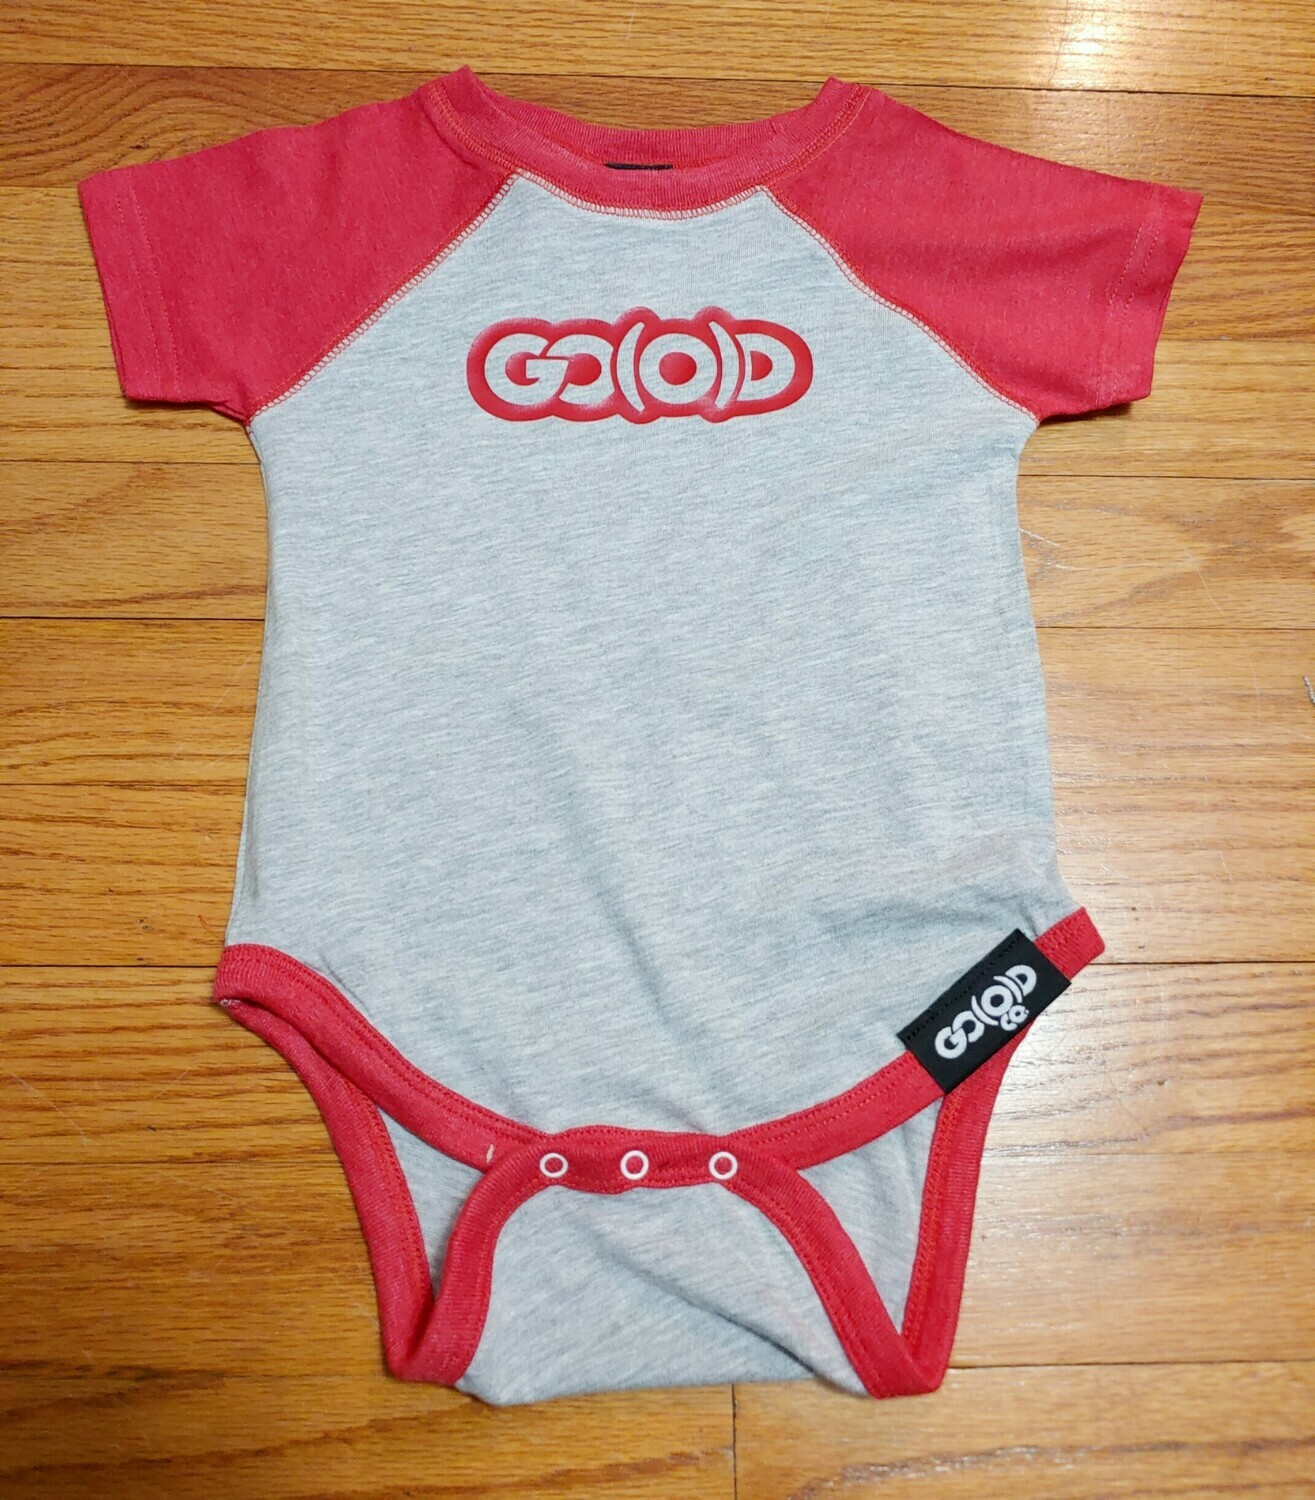 GO(O)D Onesie-gray/red/red logo